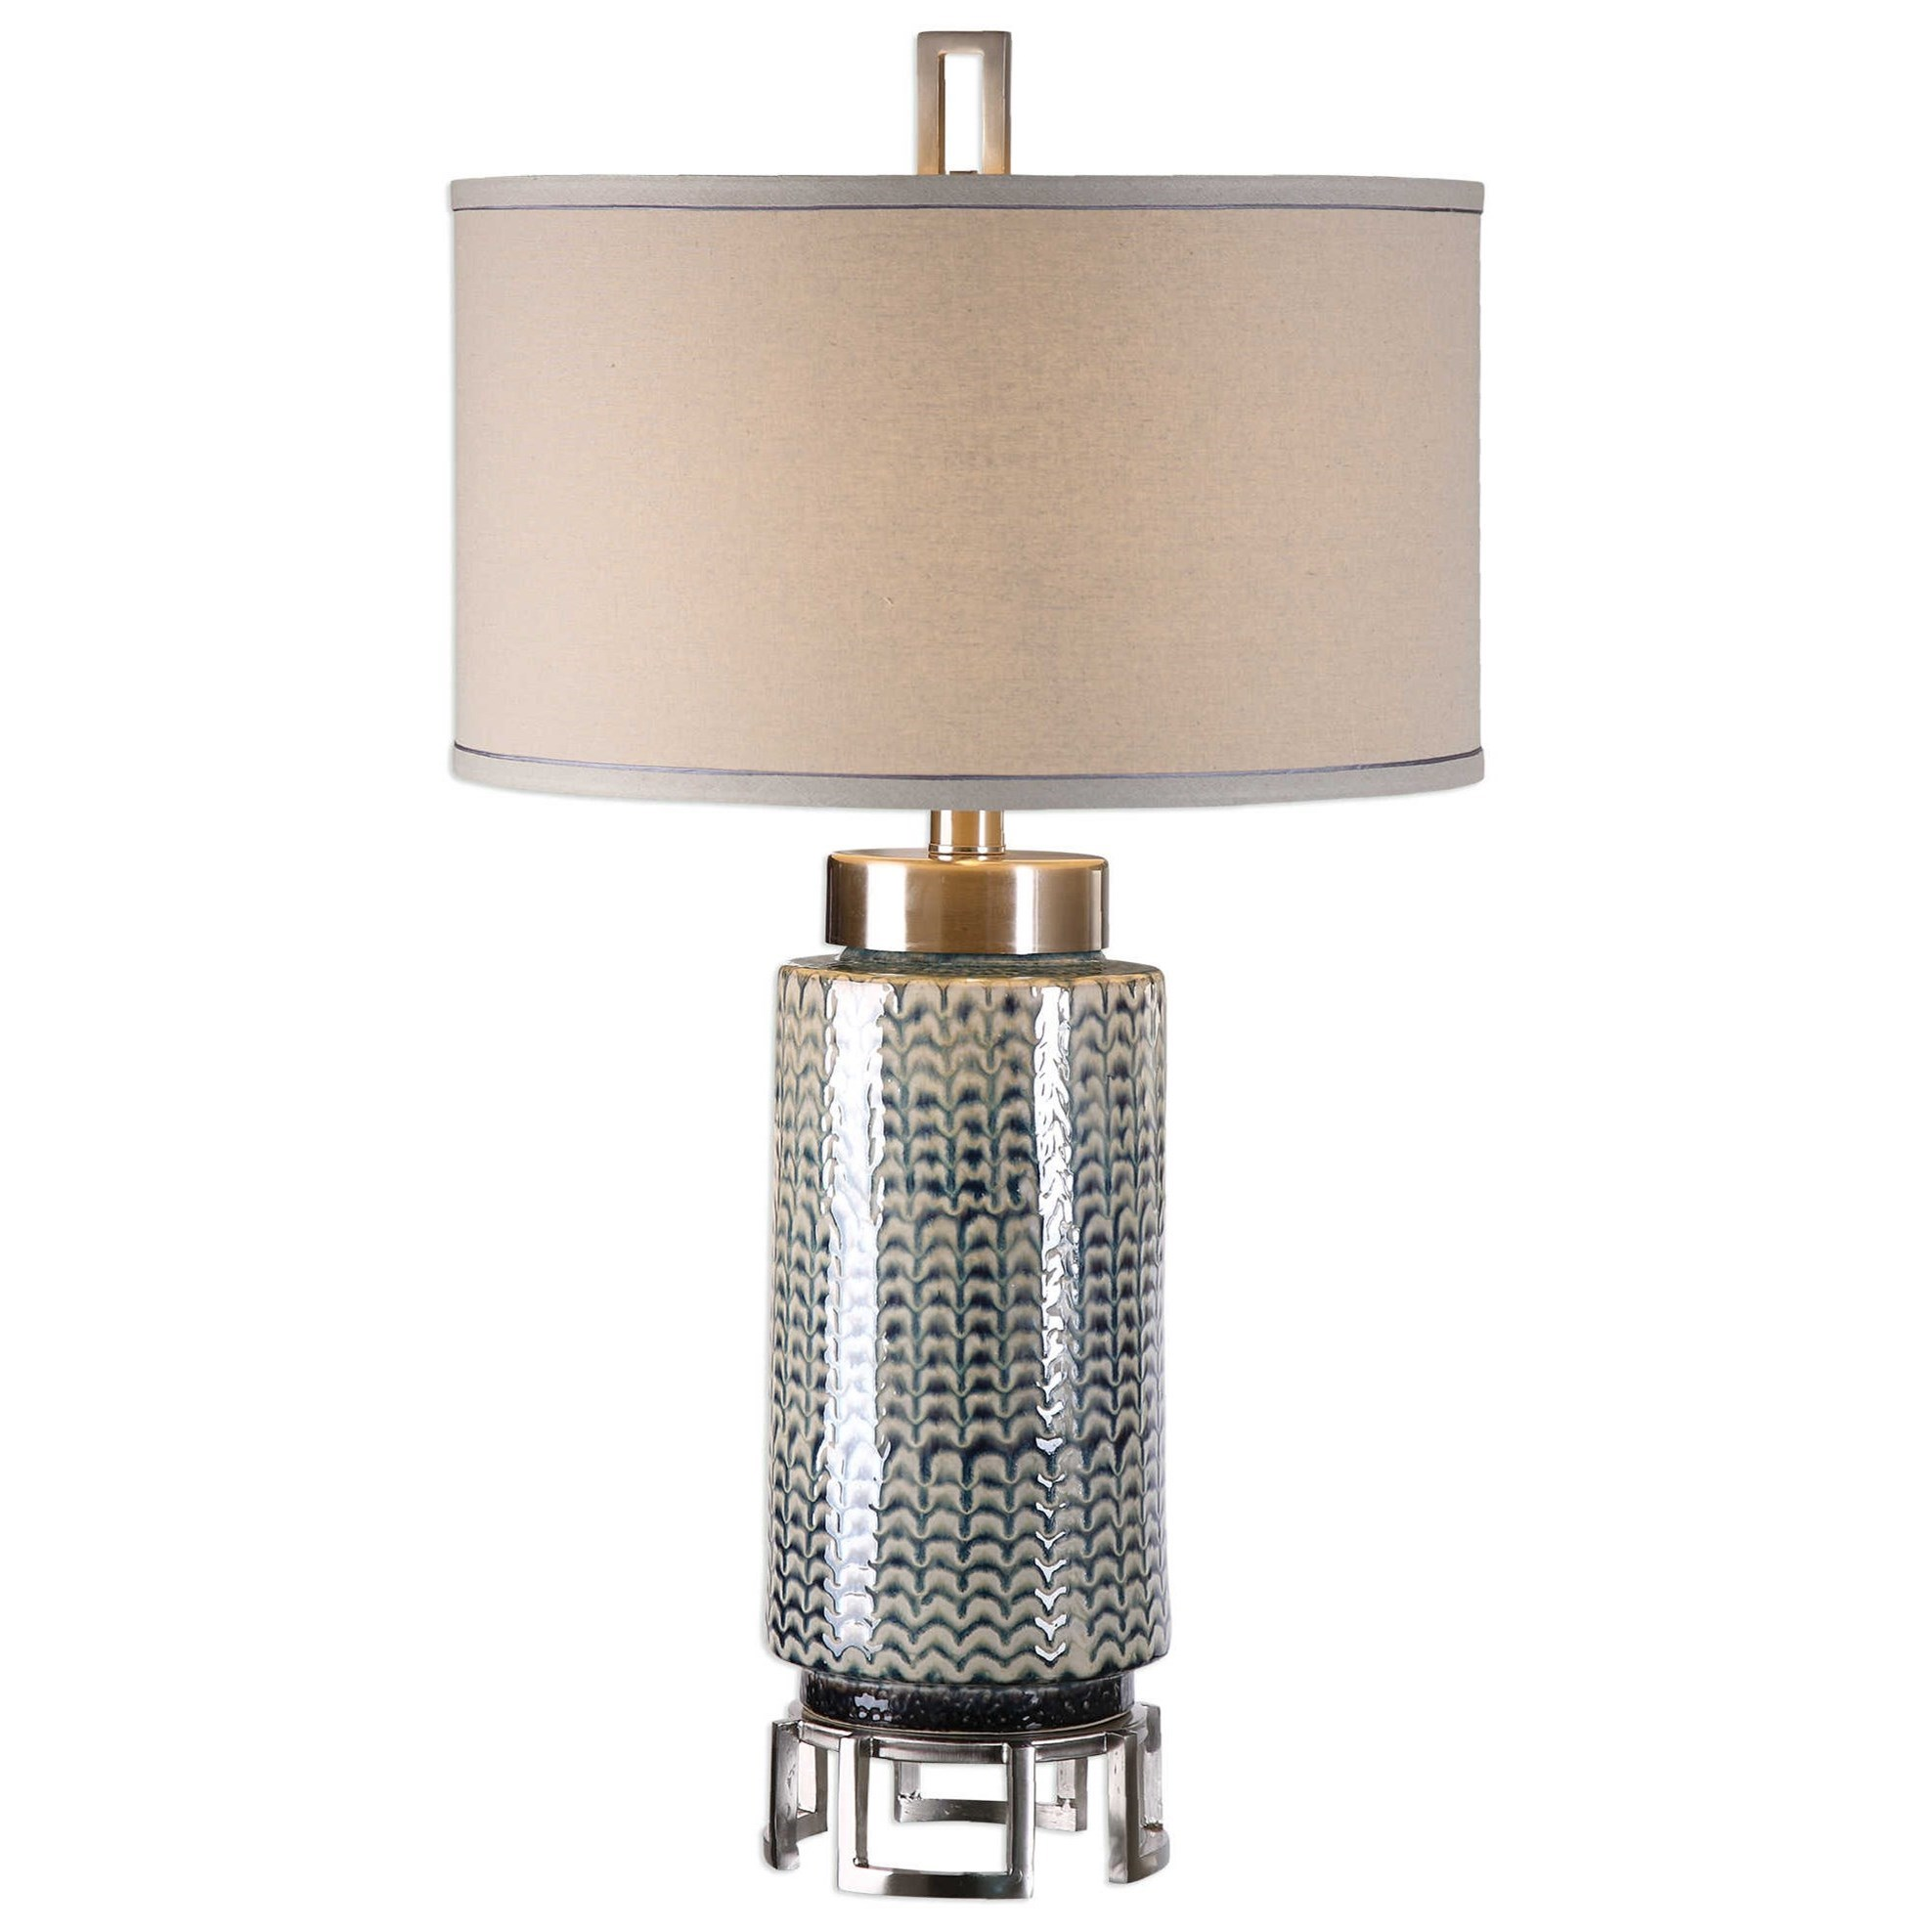 Table Lamps Vanora Cerulean Blue Table Lamp by Uttermost at Mueller Furniture